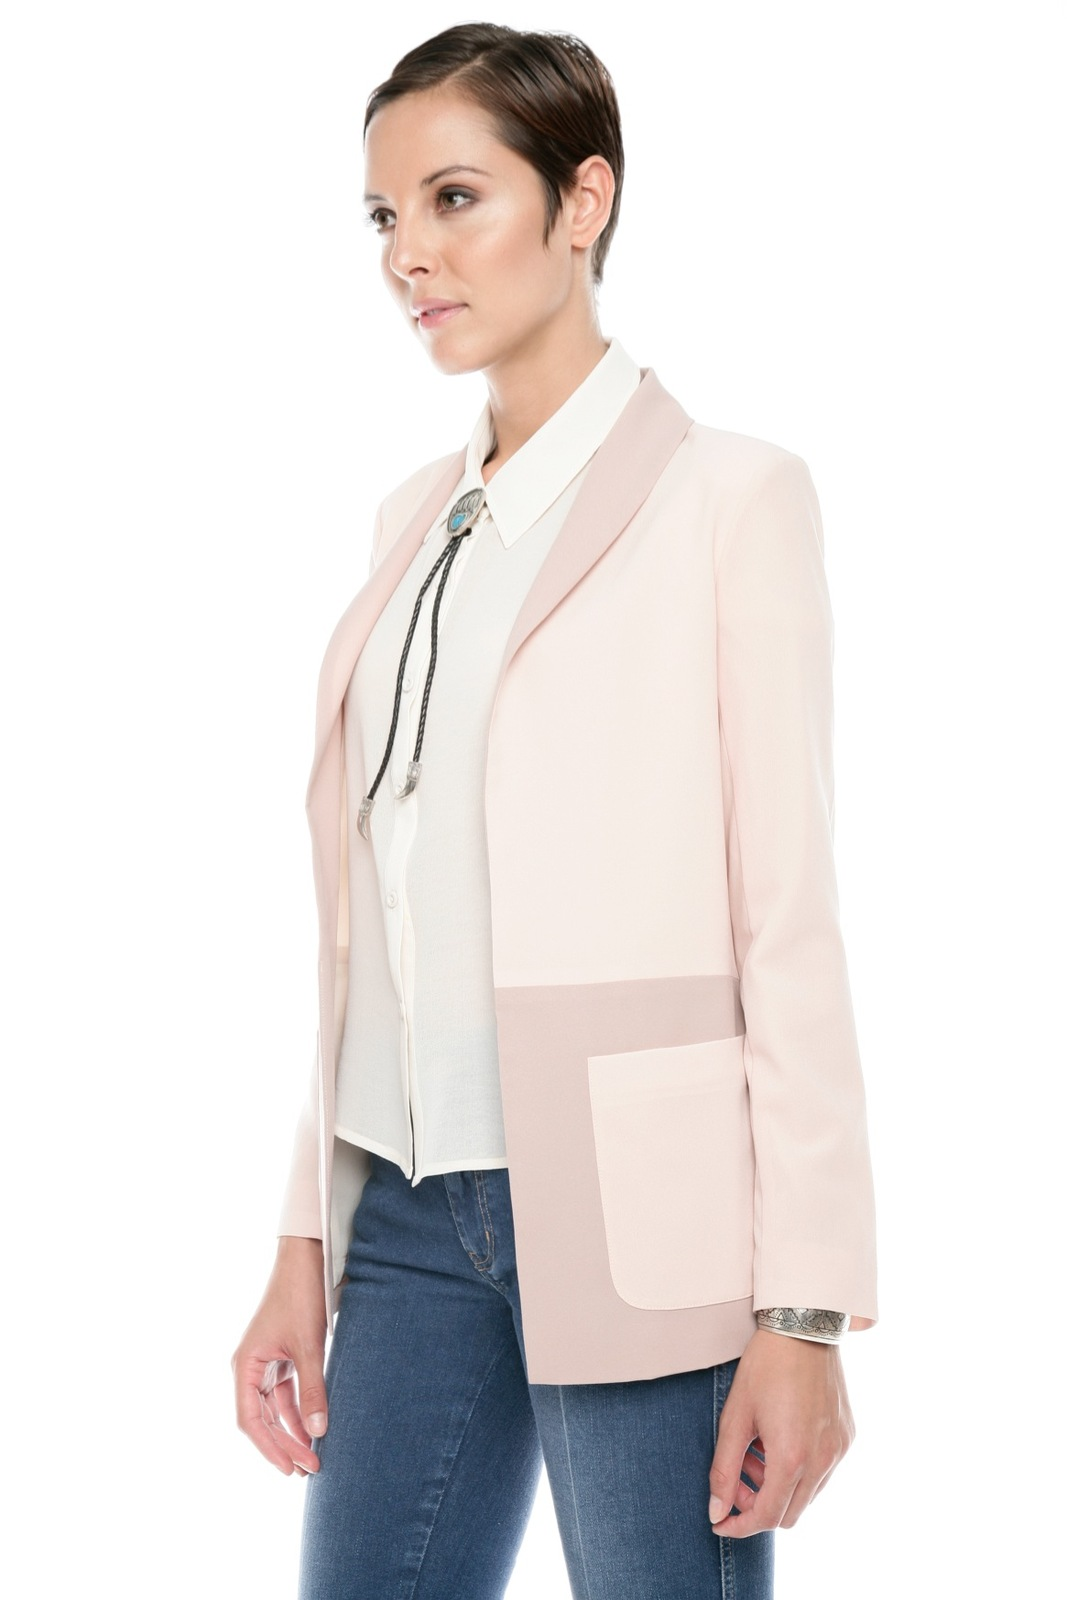 Finders Keepers Two-Tone Blazer - Side Cropped Image